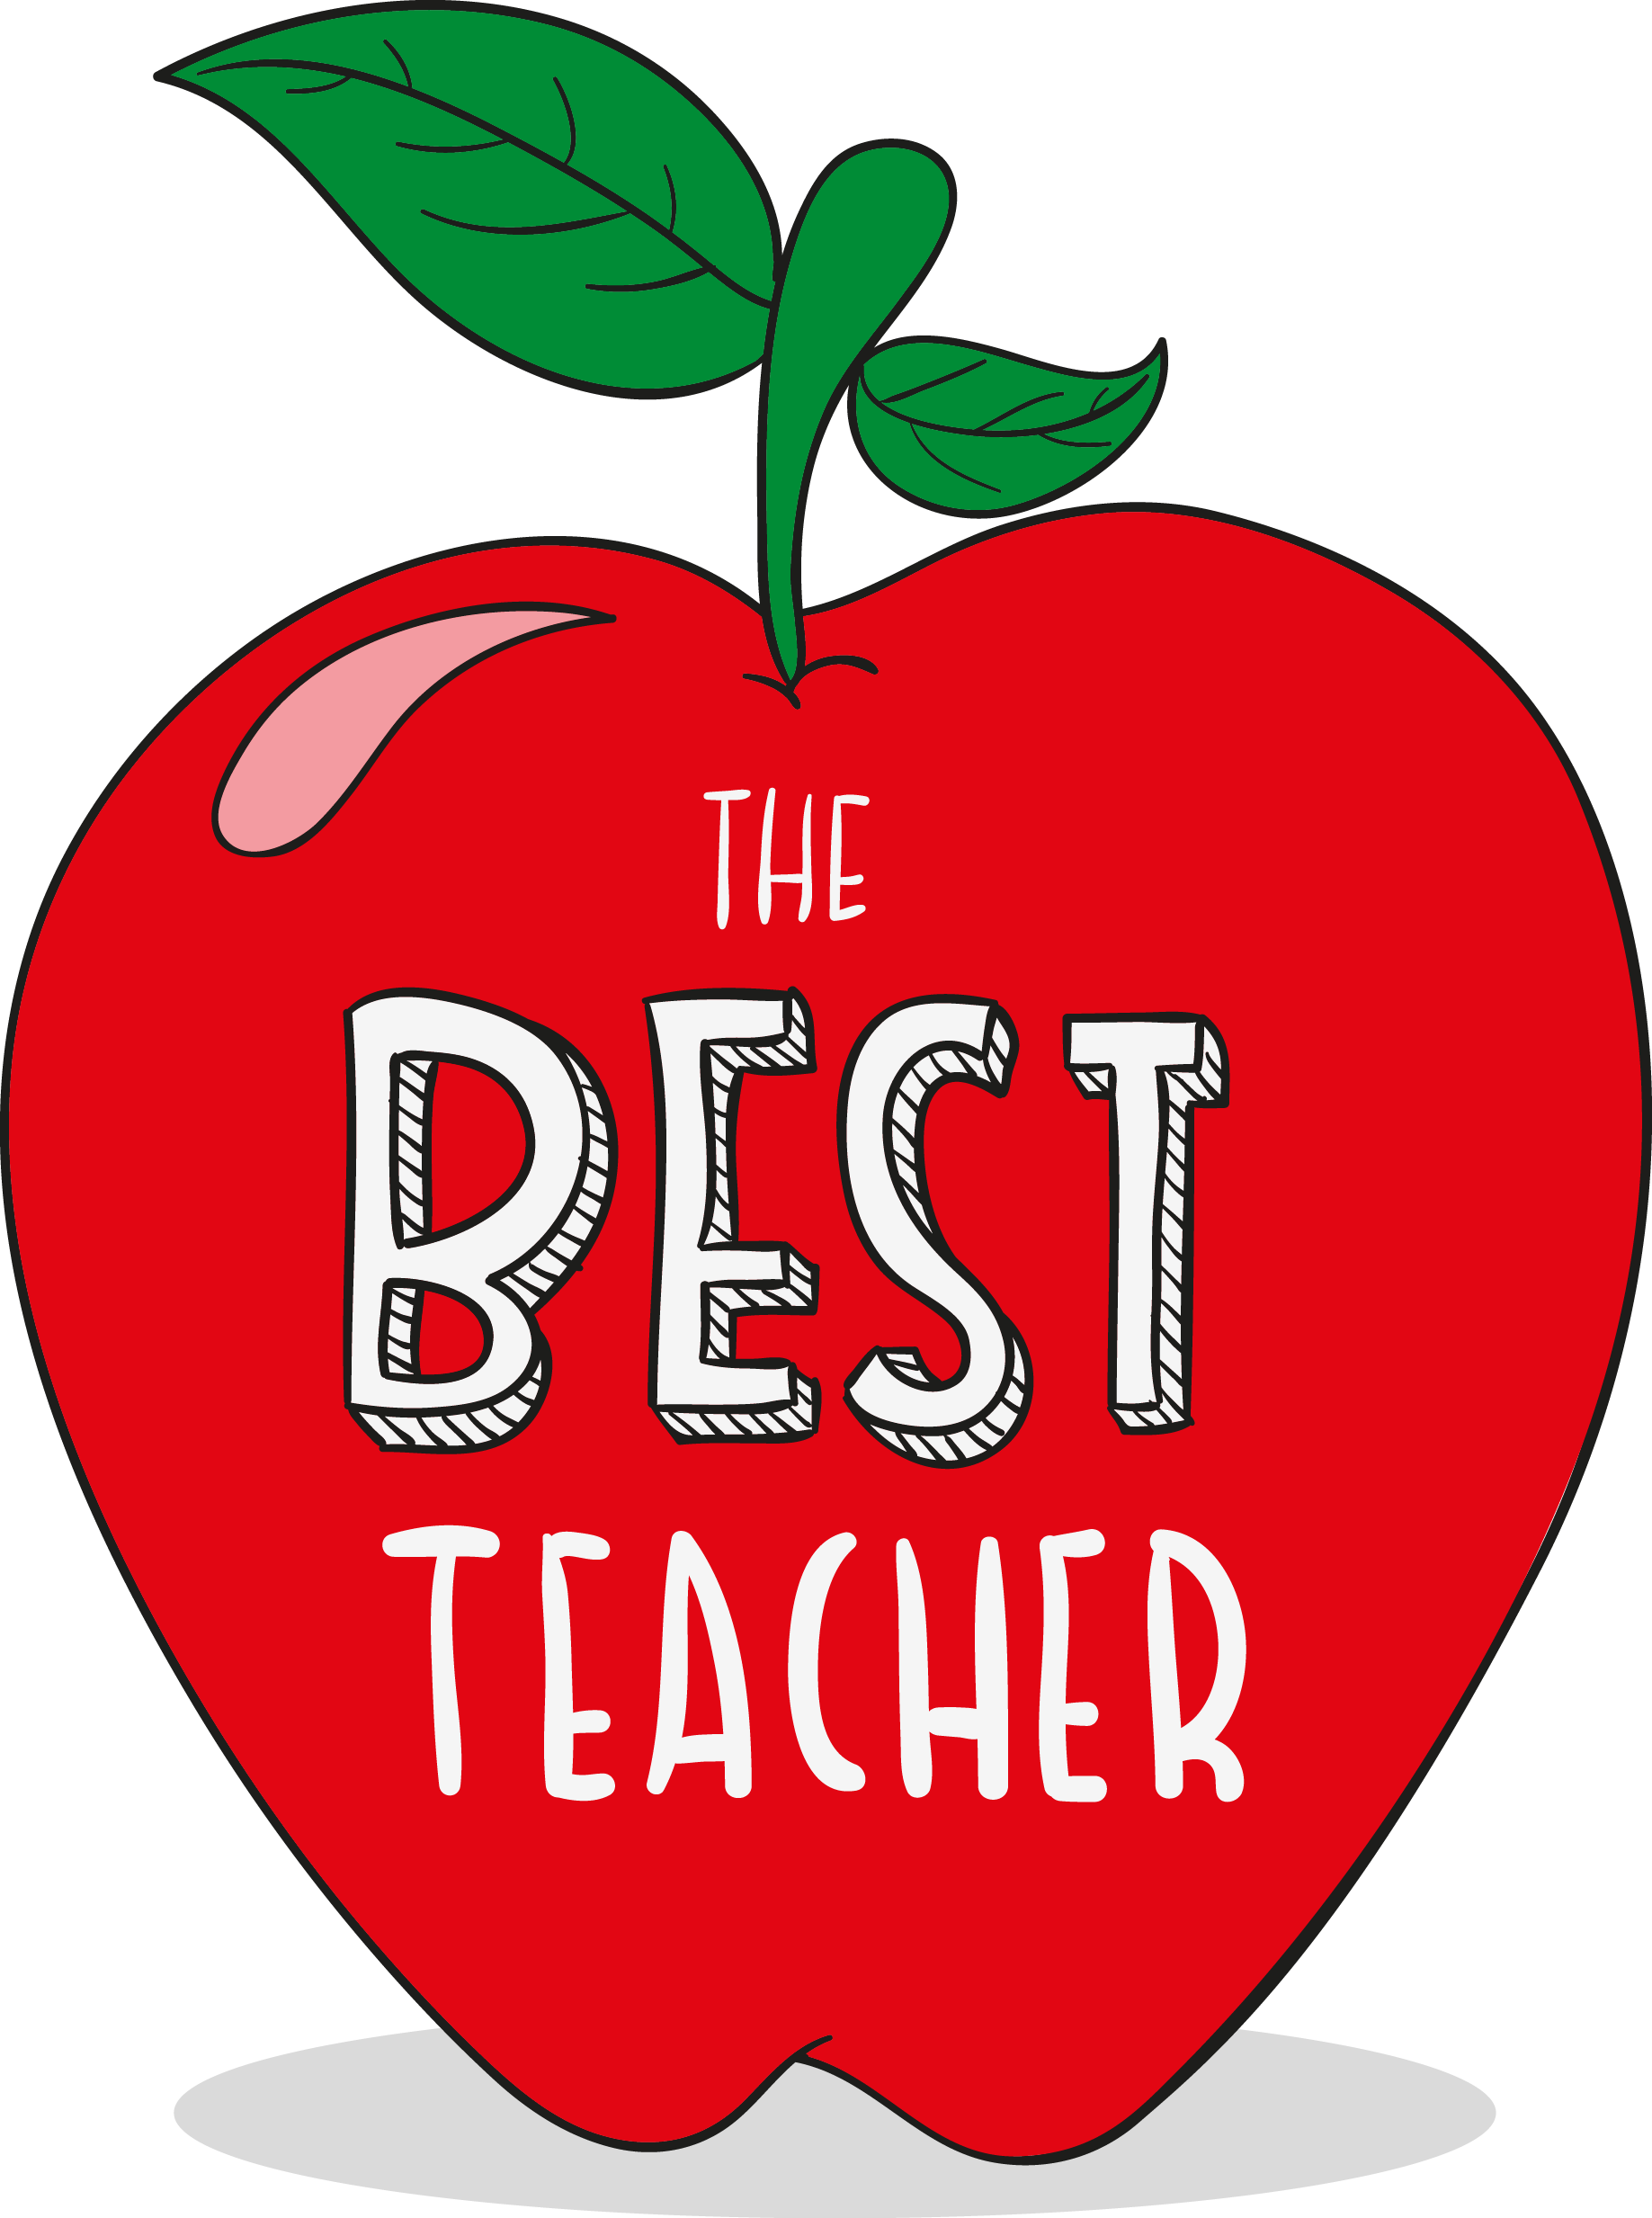 Teachers Day Student Apple Clip art.